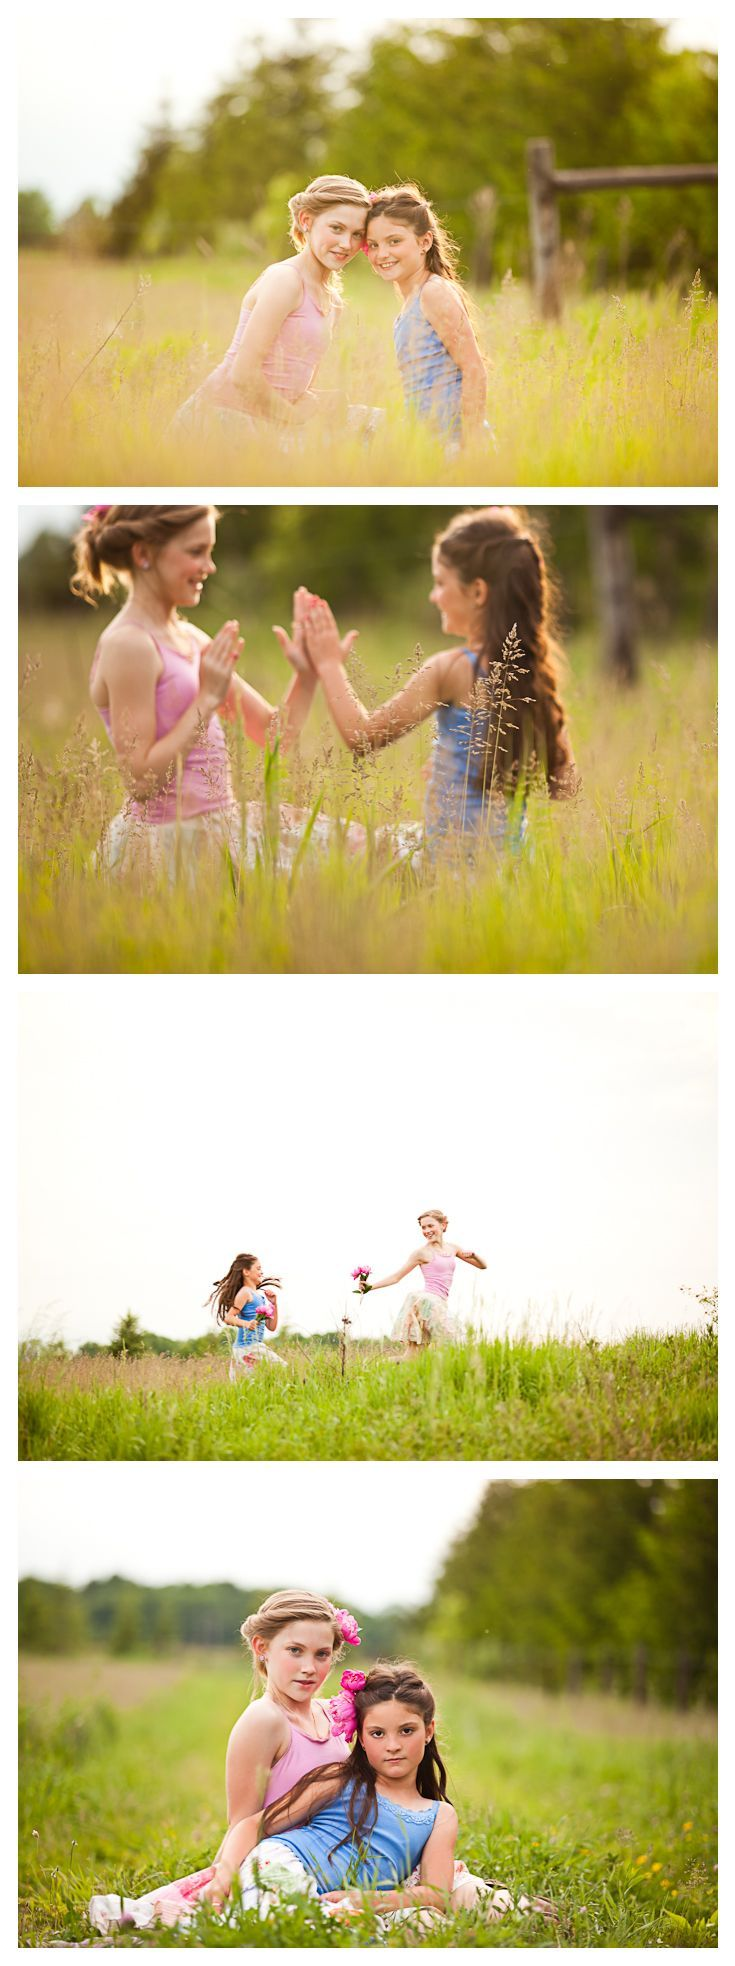 tabitha patrick photography bff session girlfriends session friend session translate to adult